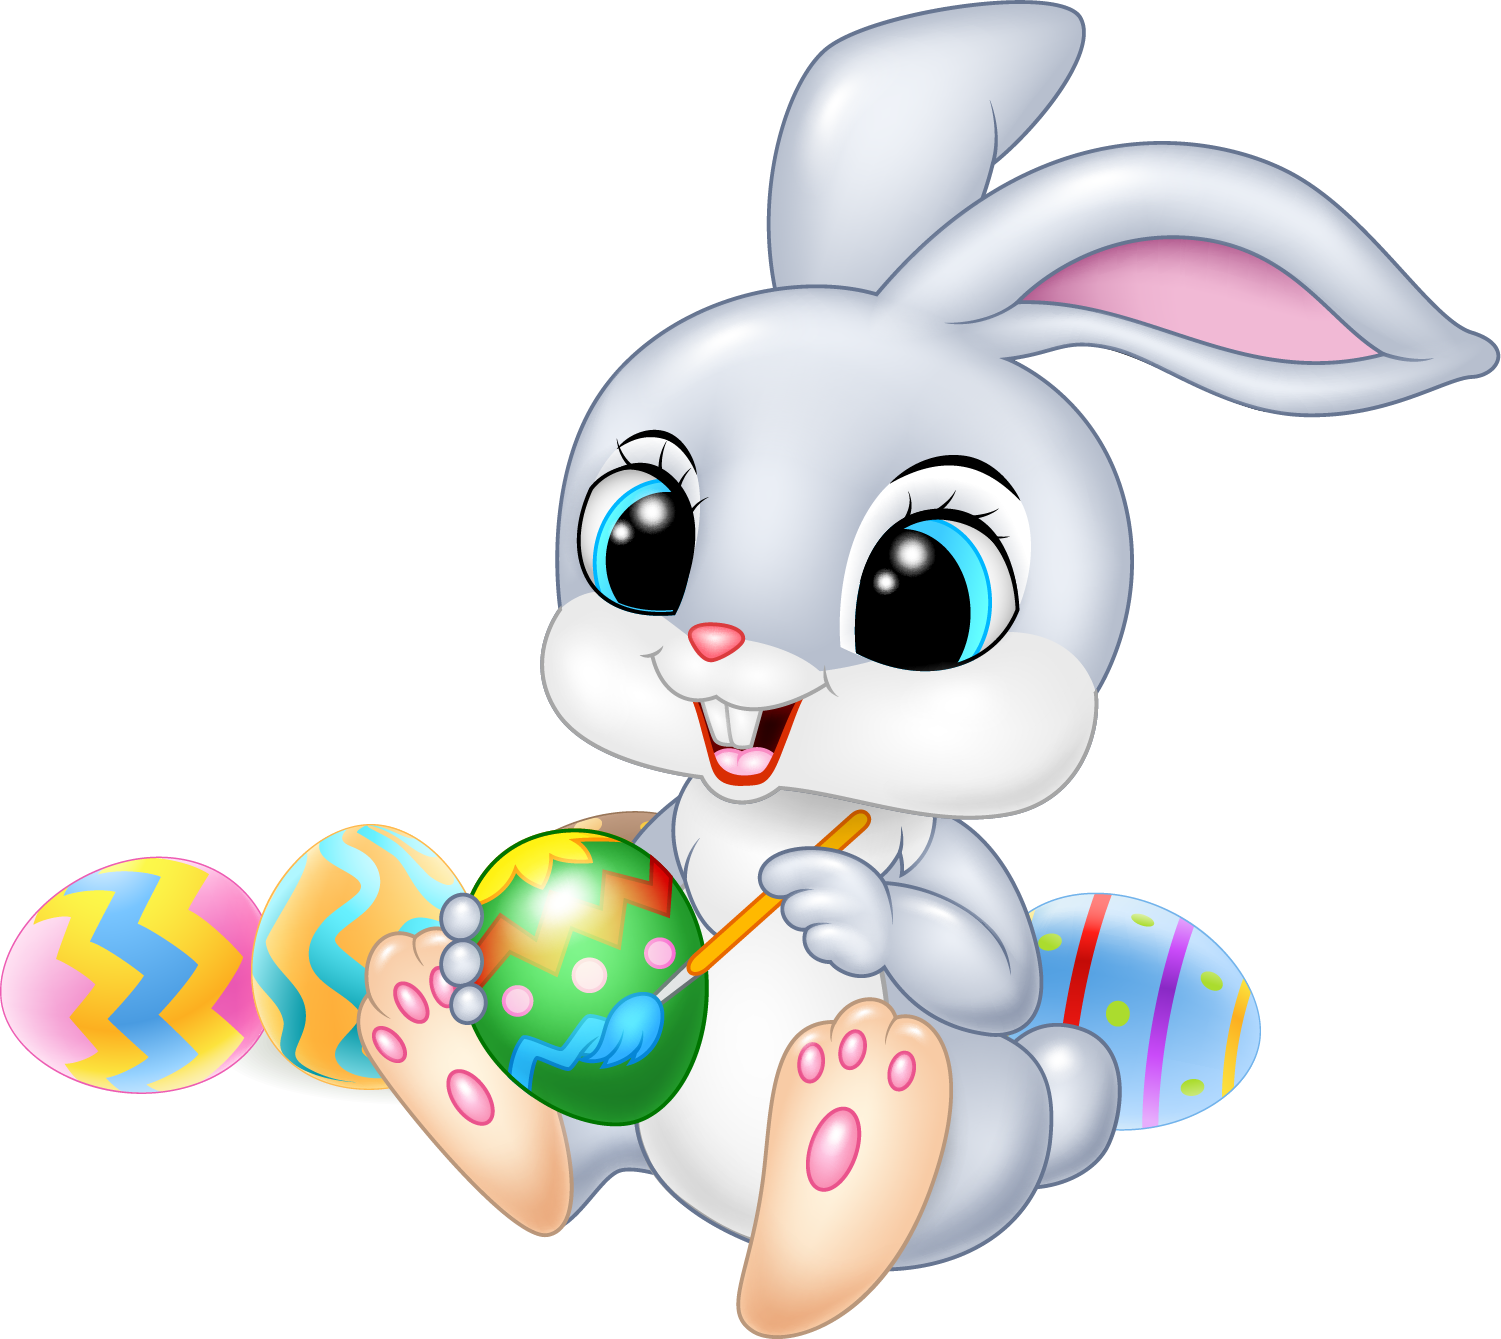 Easter Bunny Cartoon Illustration.